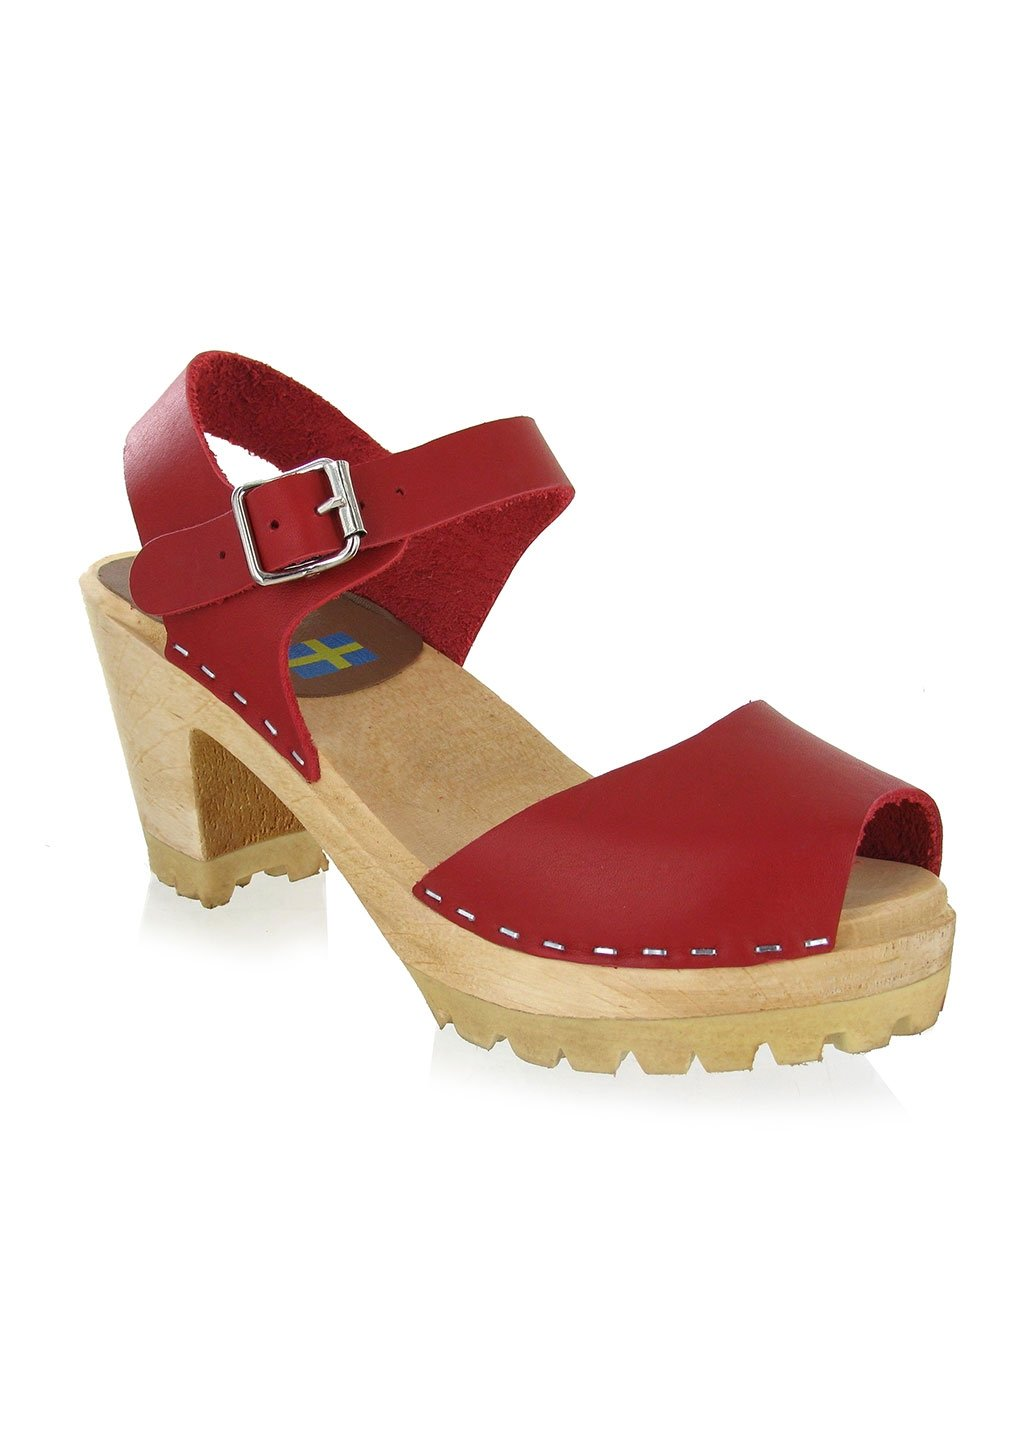 Mia Women's Greta Clog Red Leather